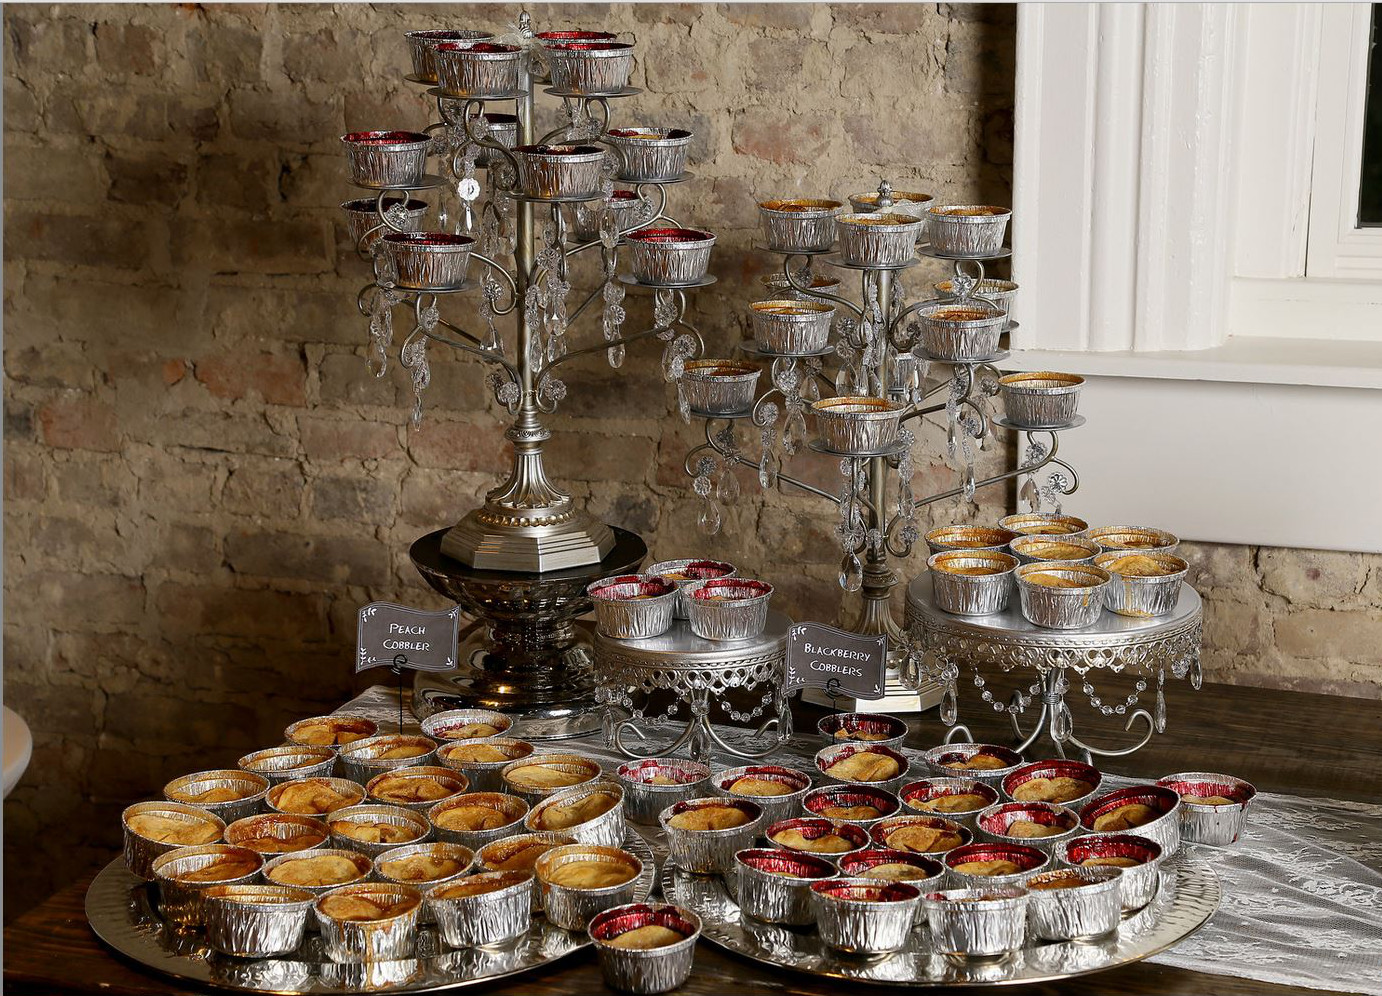 Mini pie display at a wedding reception (Affordable wedding photography)